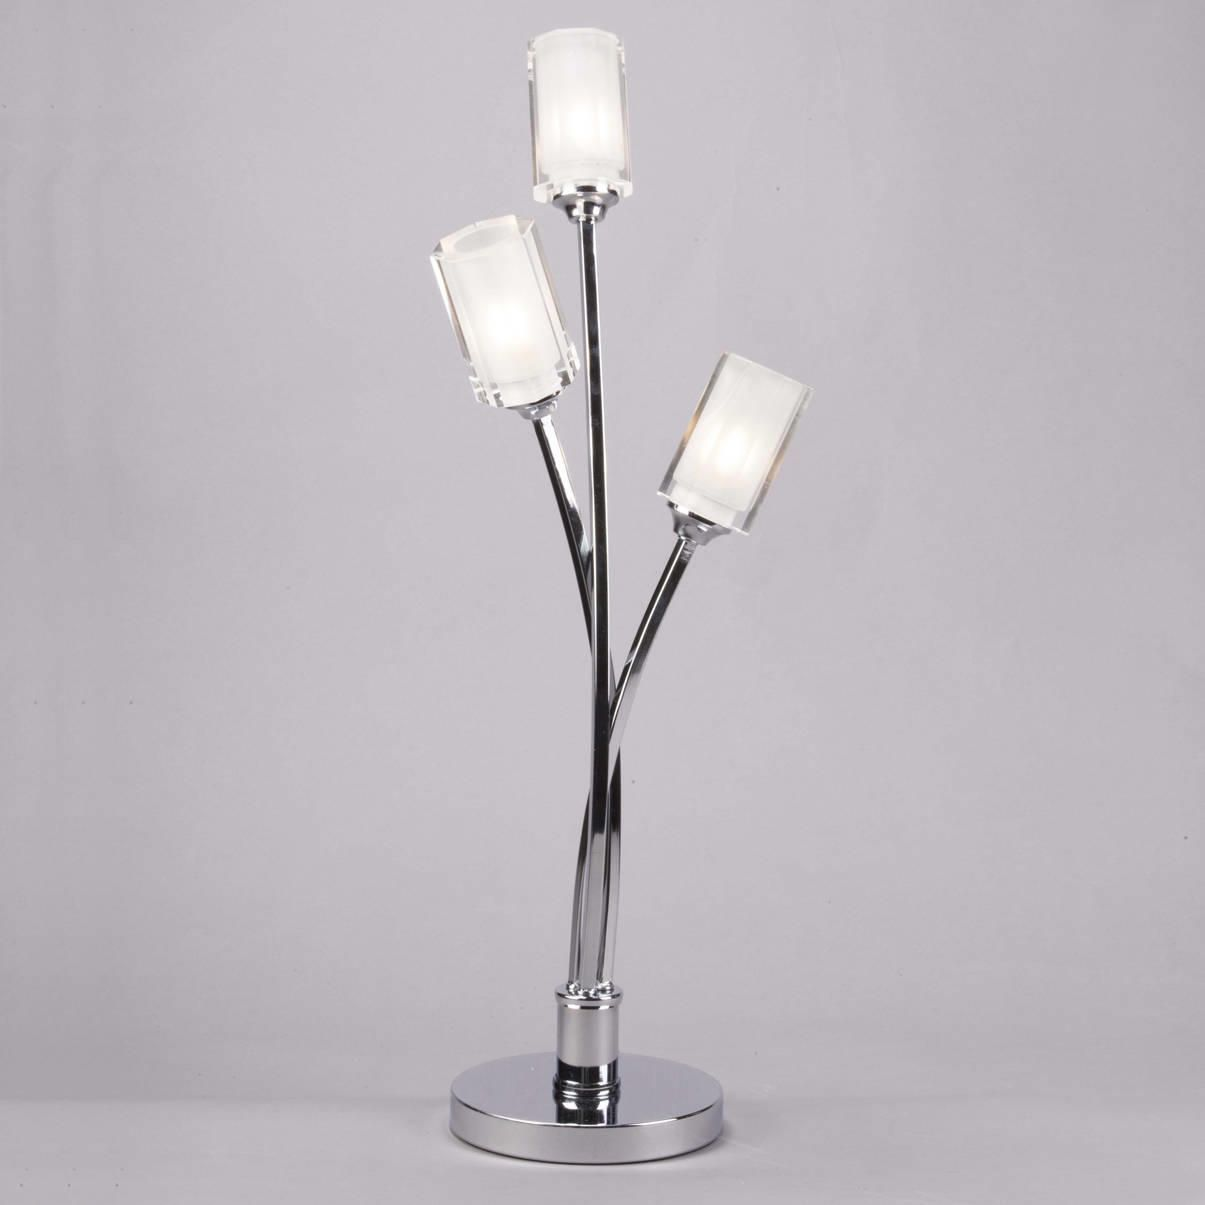 Modern table lamp octi 3 light chrome from litecraft metal frame glass shade table lamps aloadofball Gallery